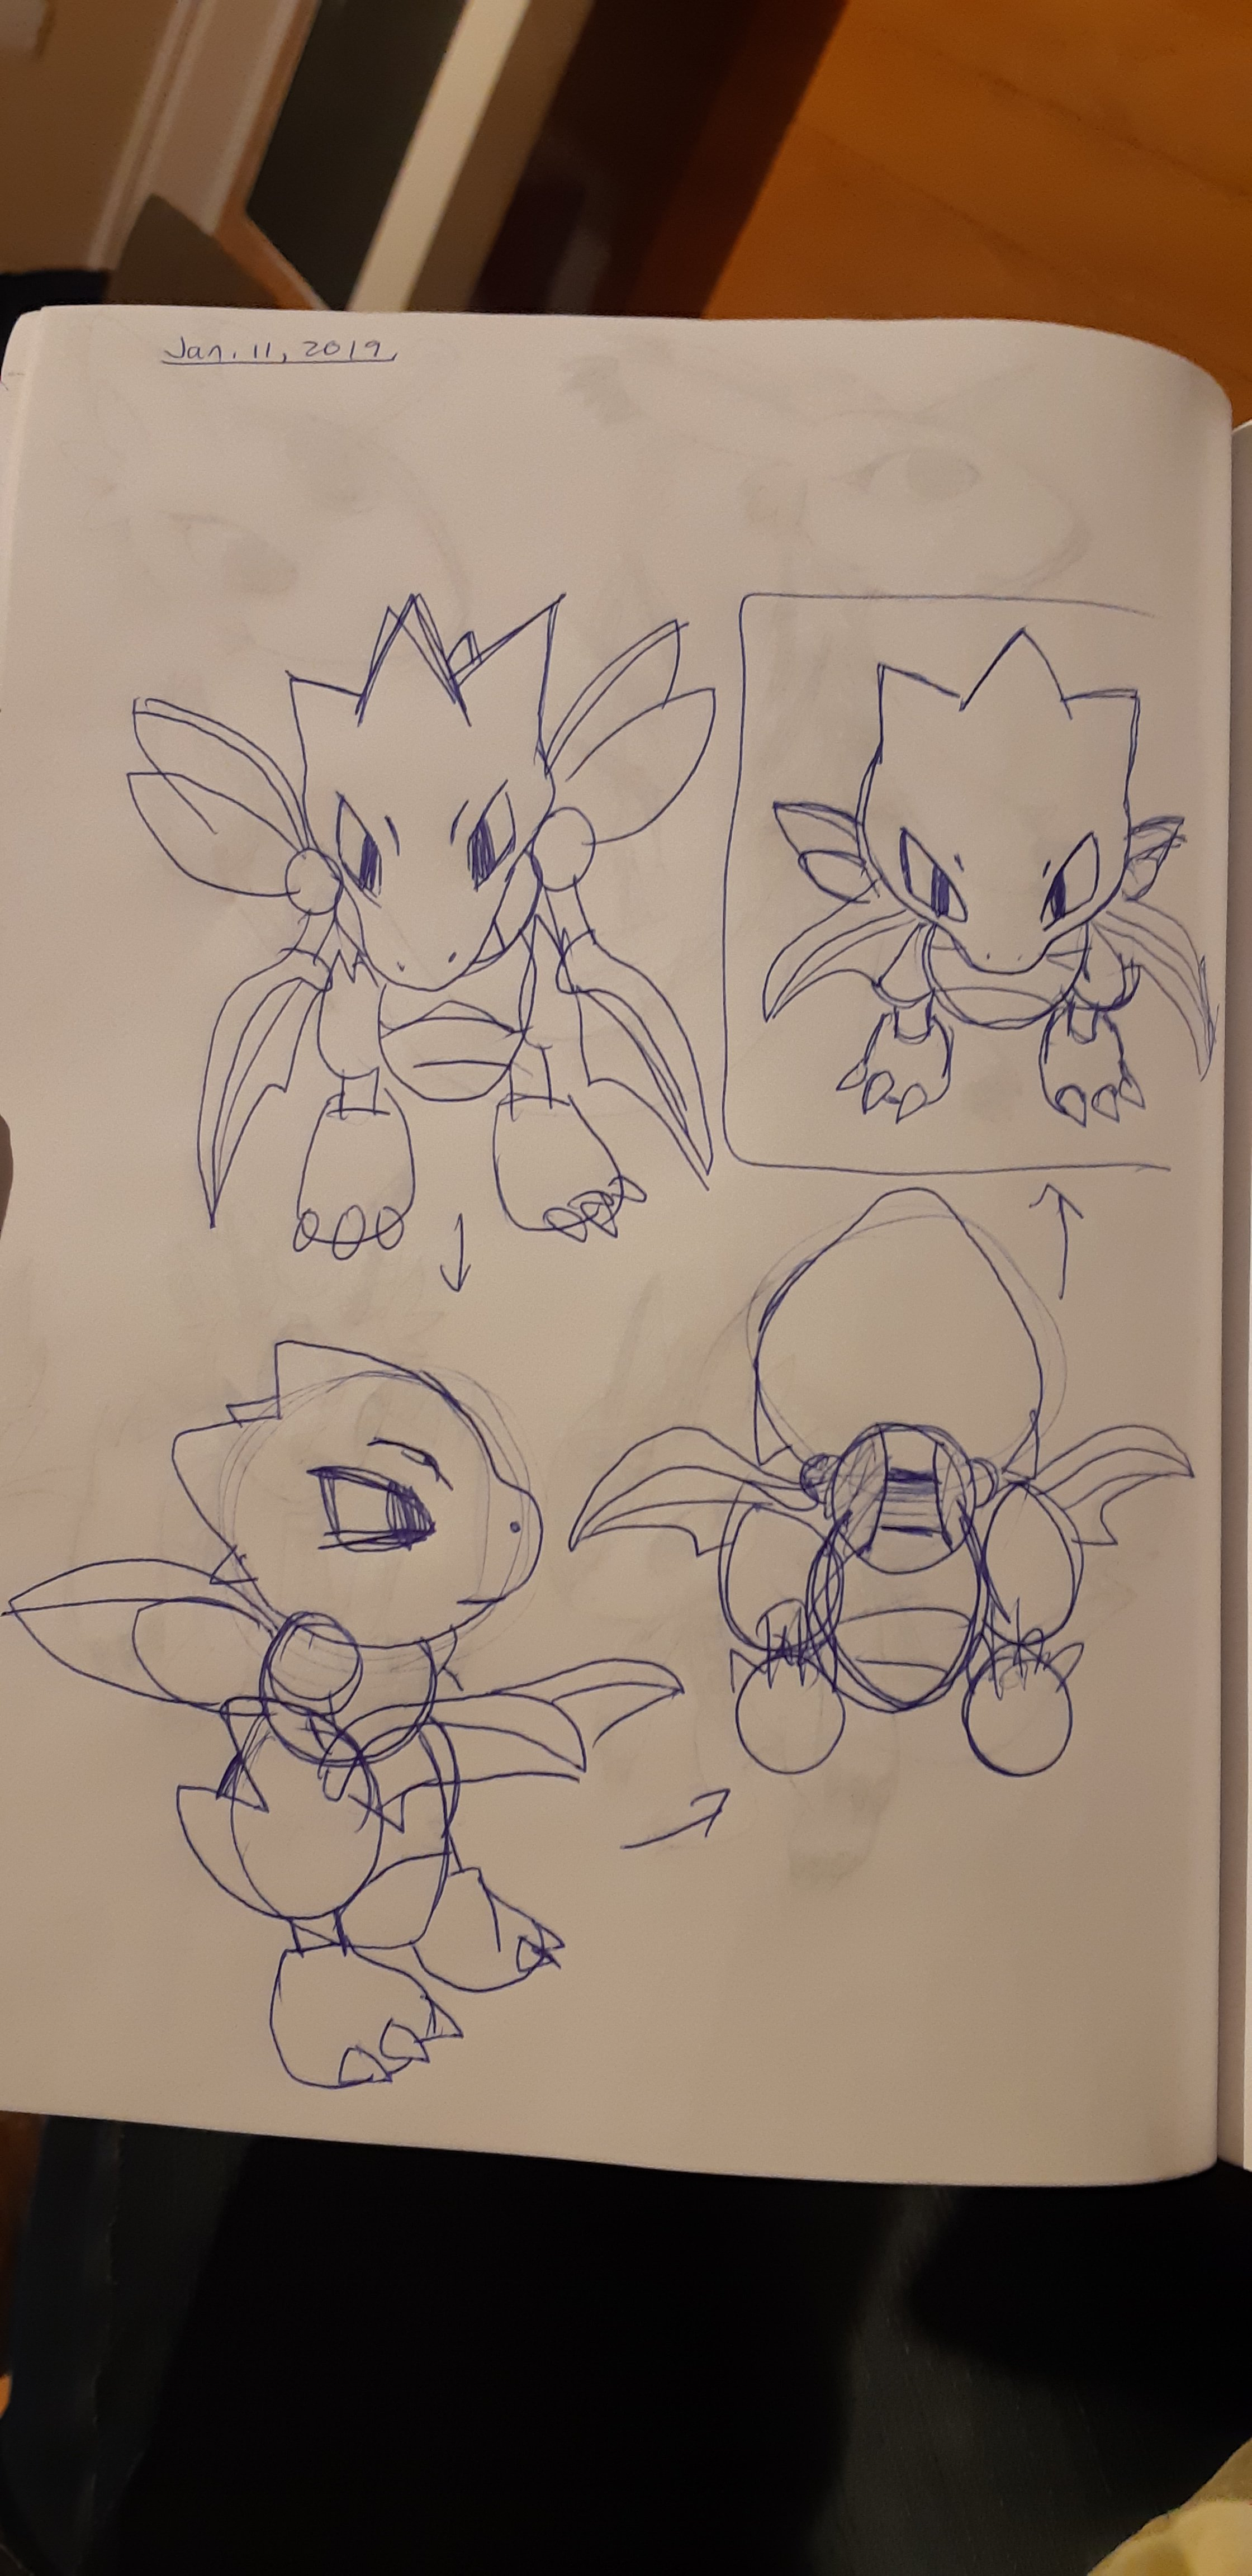 Concept sketches of a scyther; the design has been squished to create an SD version.